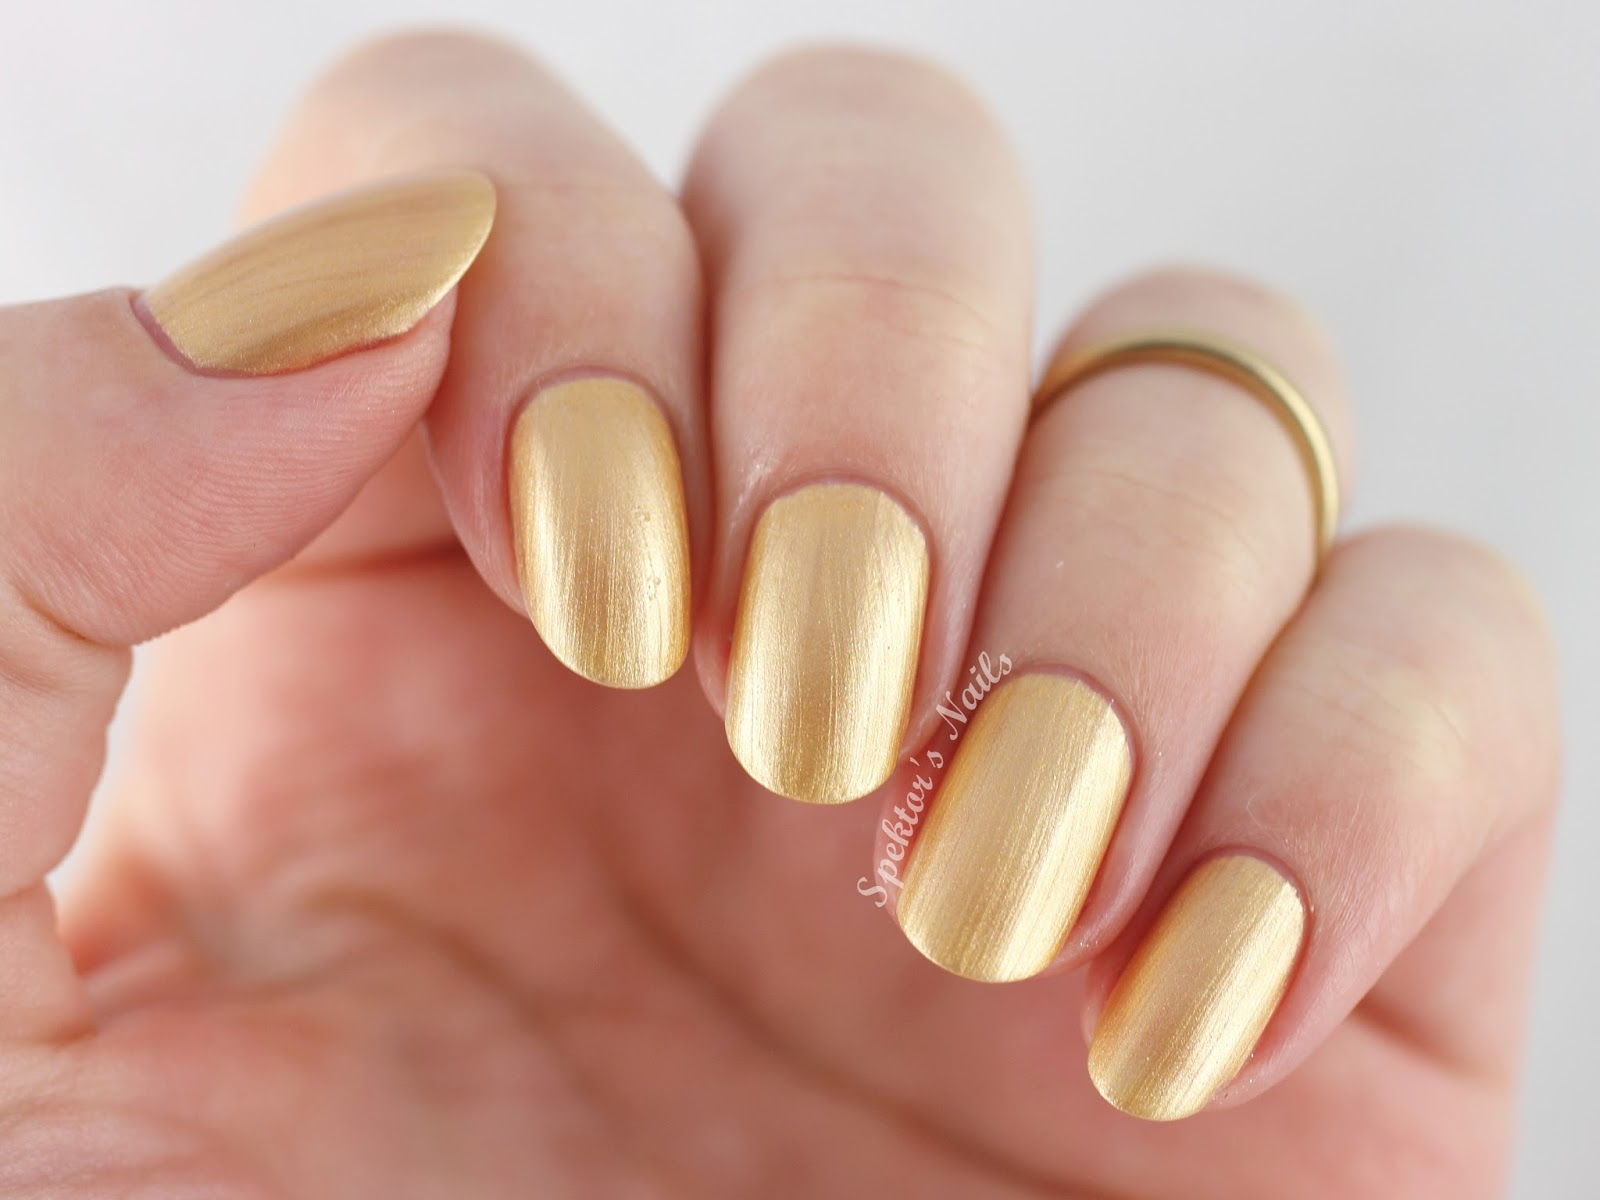 OPI Holiday 2014 Rollin' in Cashmere